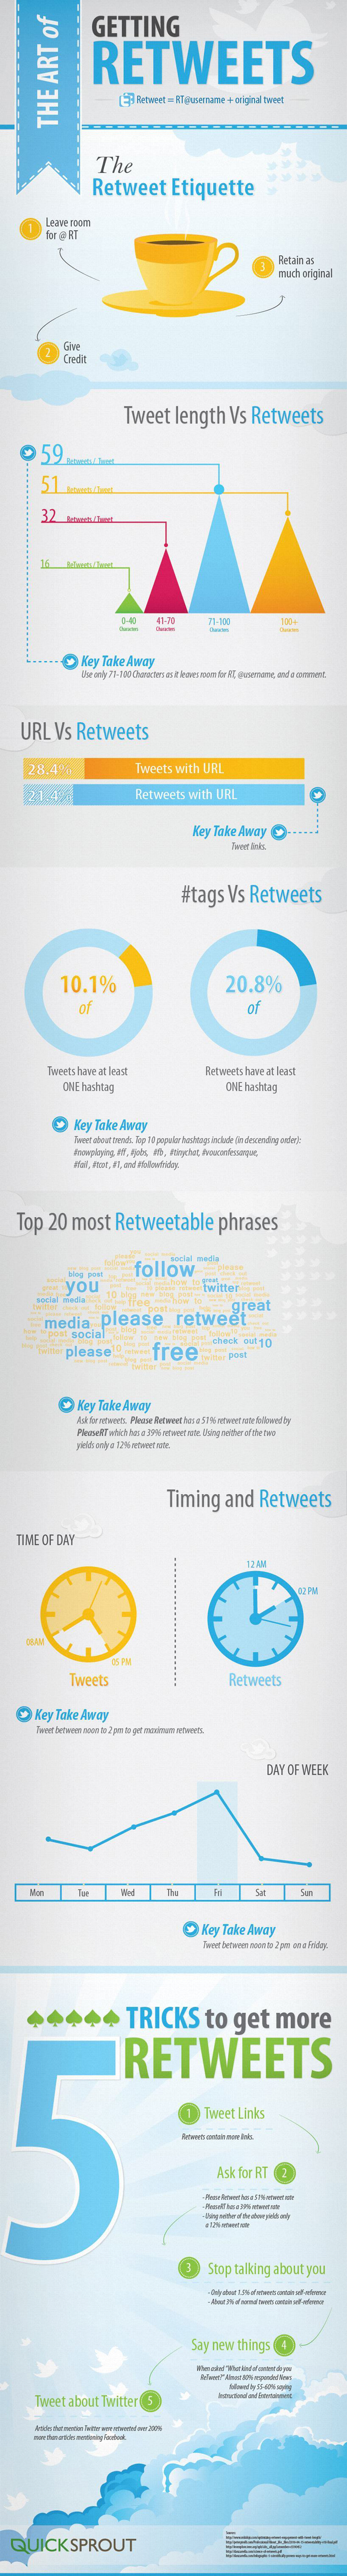 The art of getting retweets infographic